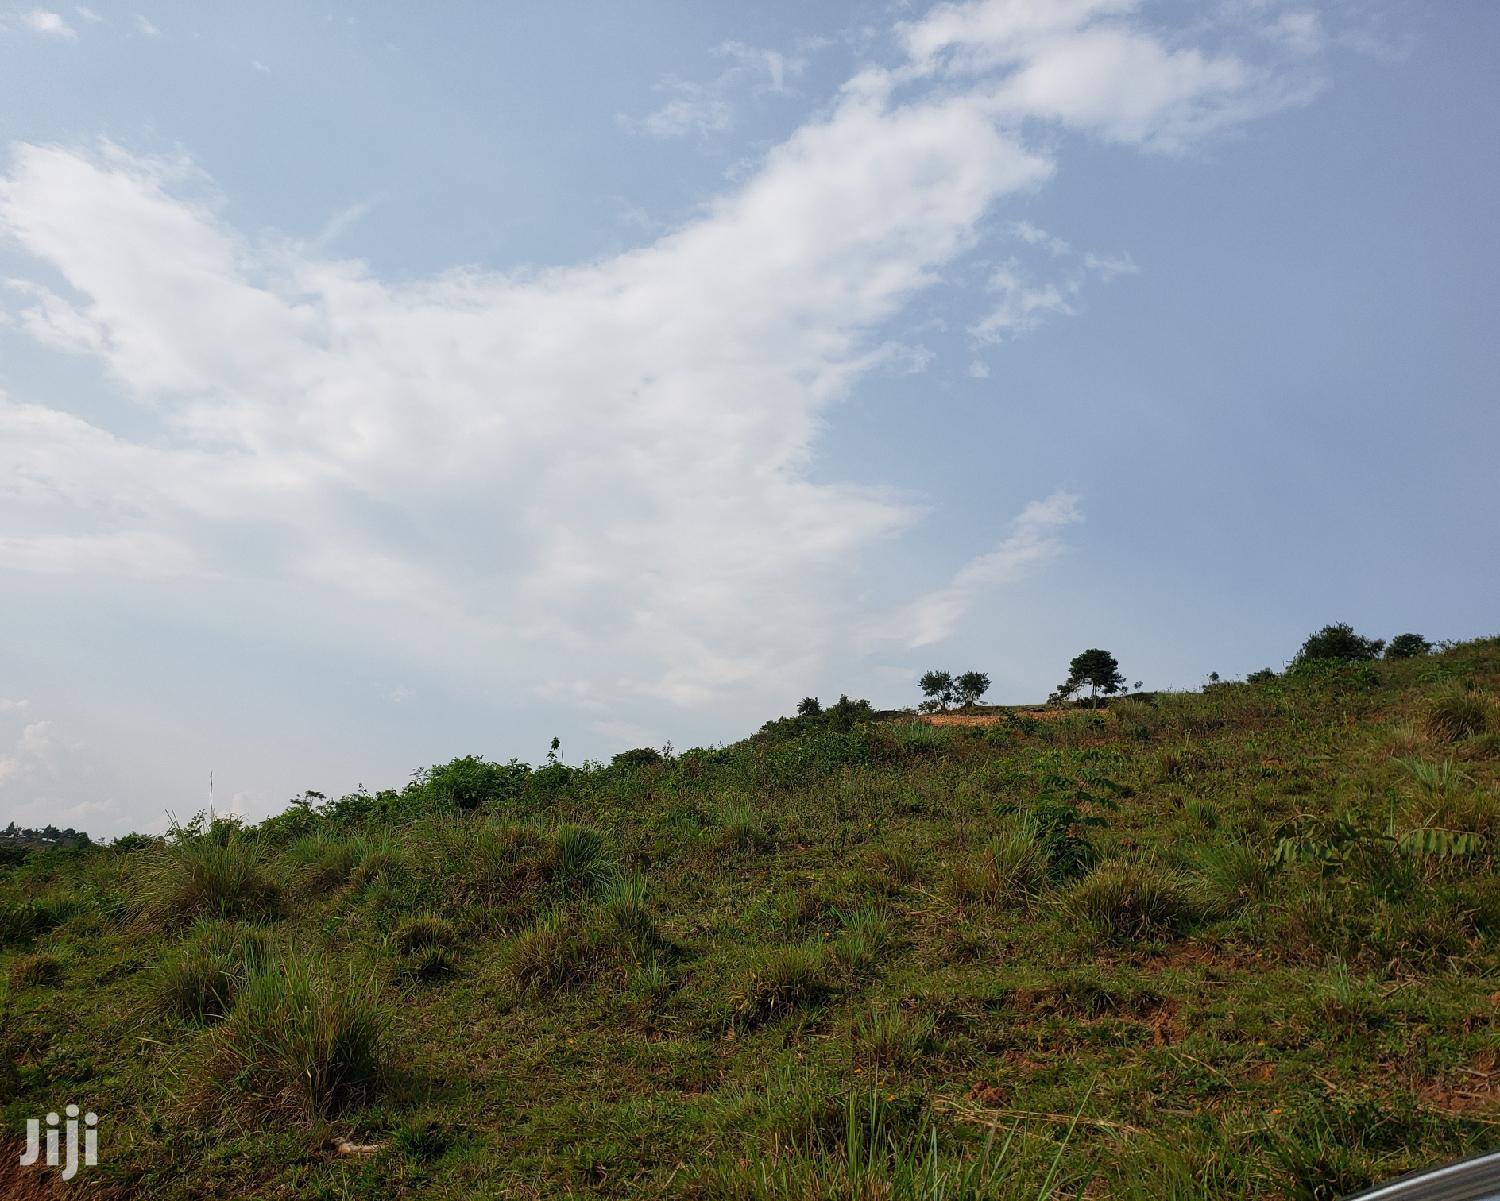 Land Available at Entebbe Kitovu | Land & Plots For Sale for sale in Wakiso, Central Region, Uganda